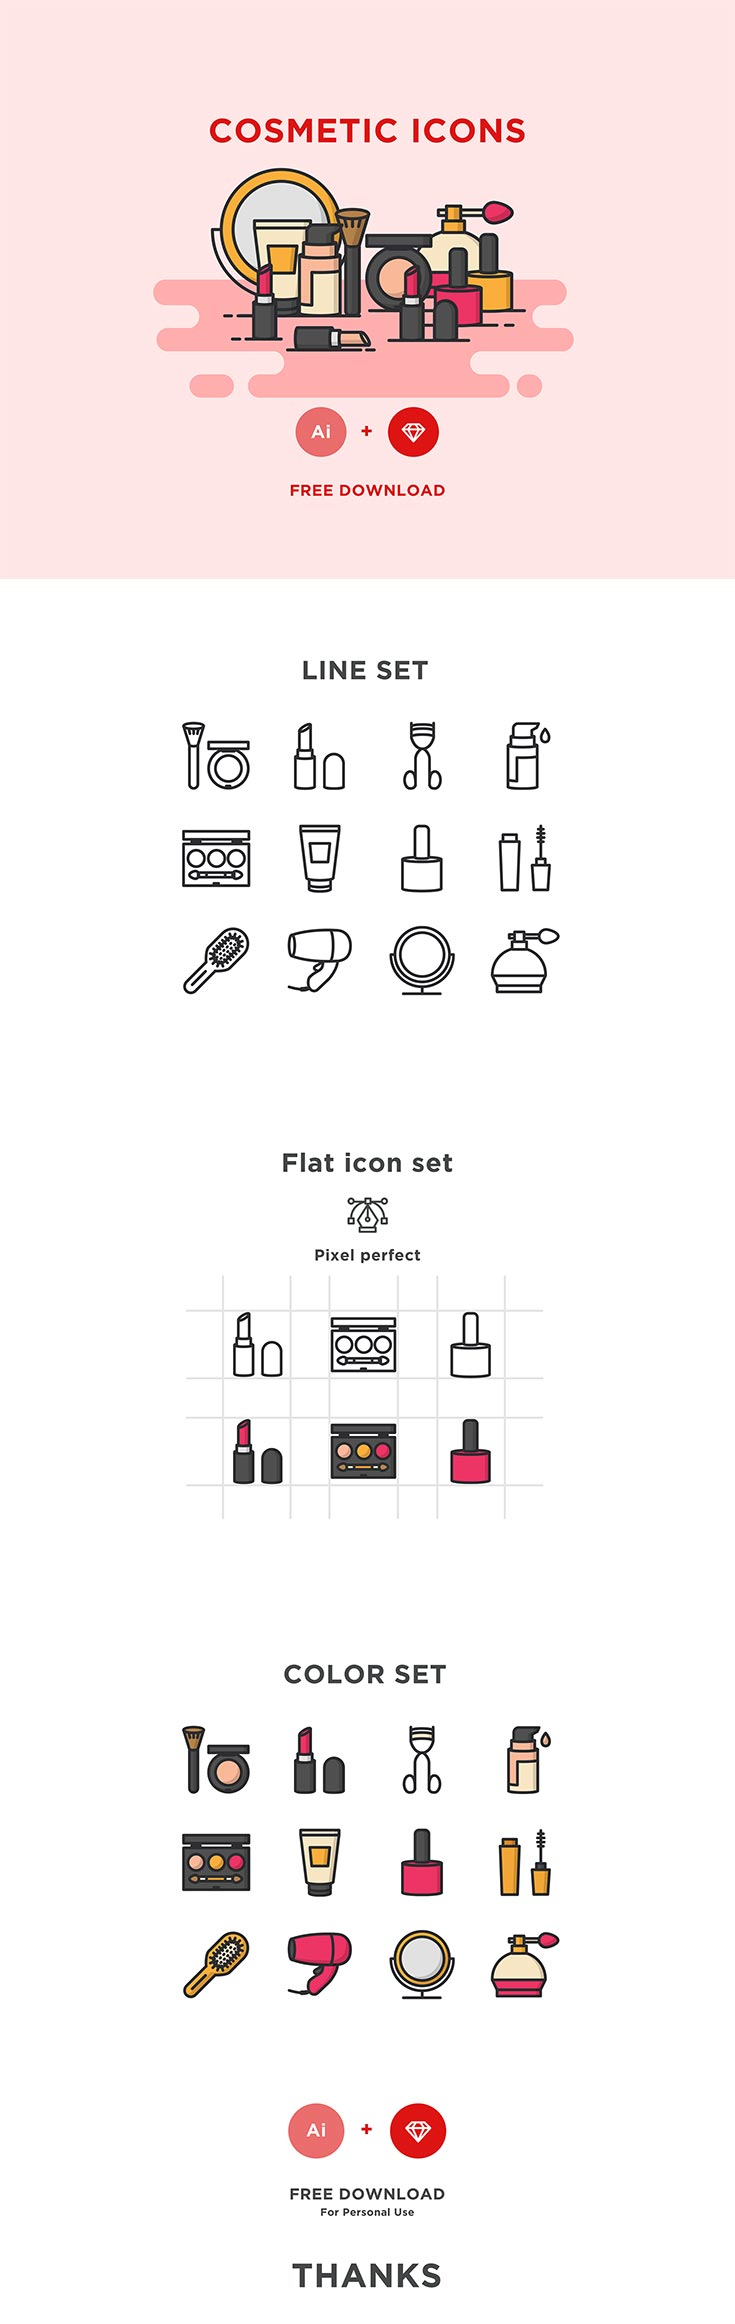 Free Cosmetic Icons Set